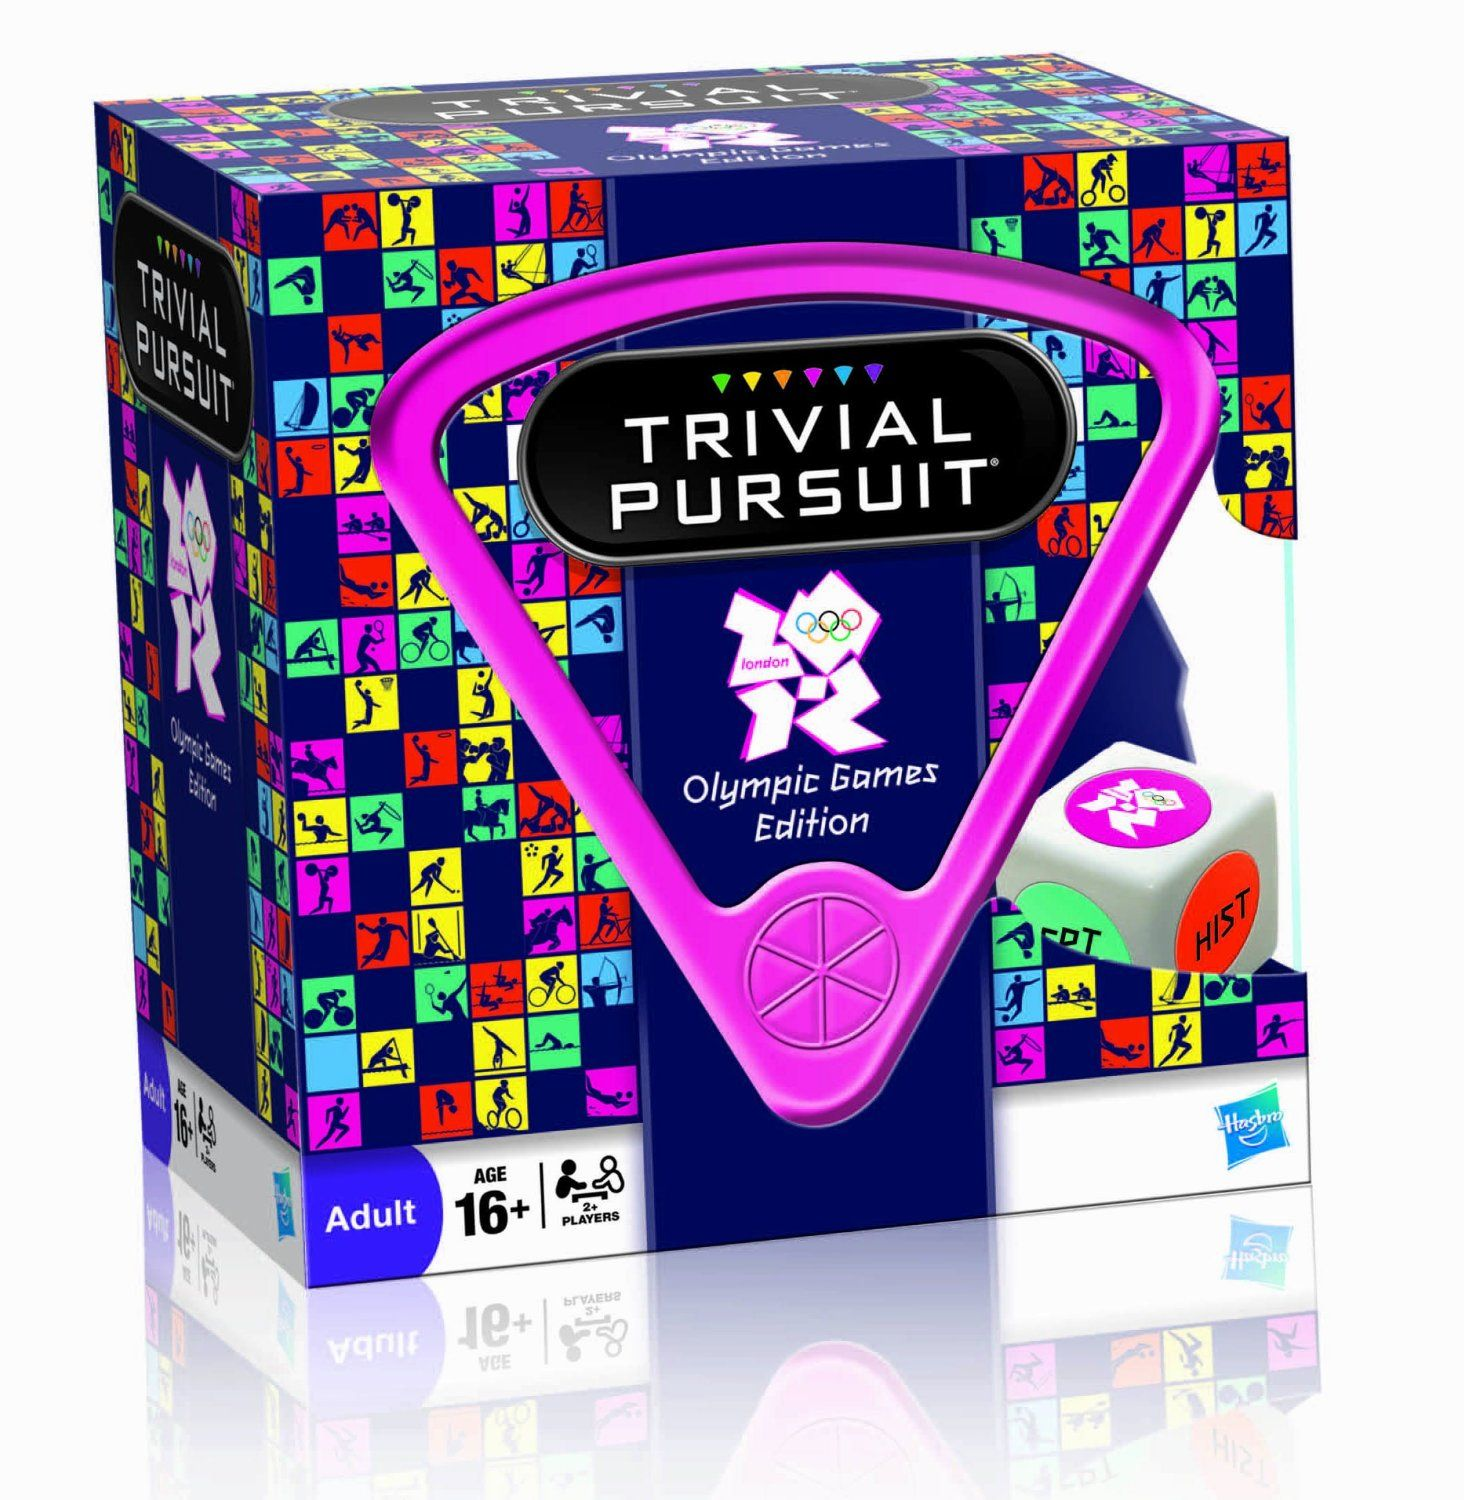 Trivial Pursuit London 2012 Games Edition Amazon.co.uk